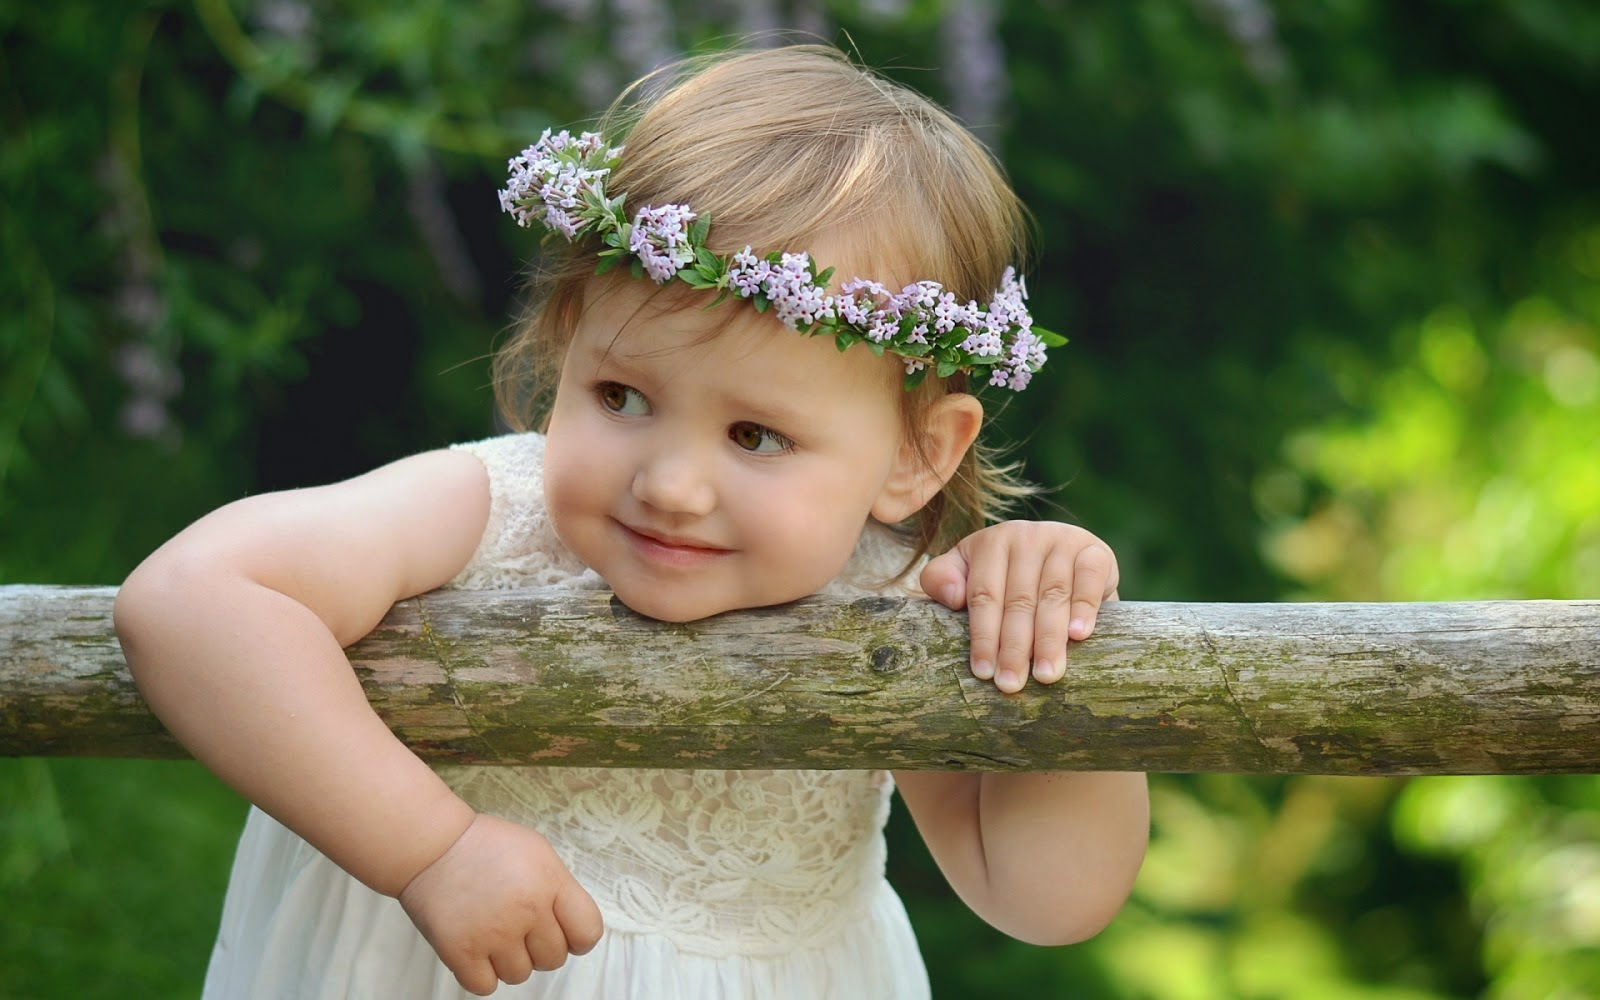 very beautiful and cute kids - princess - cute kids